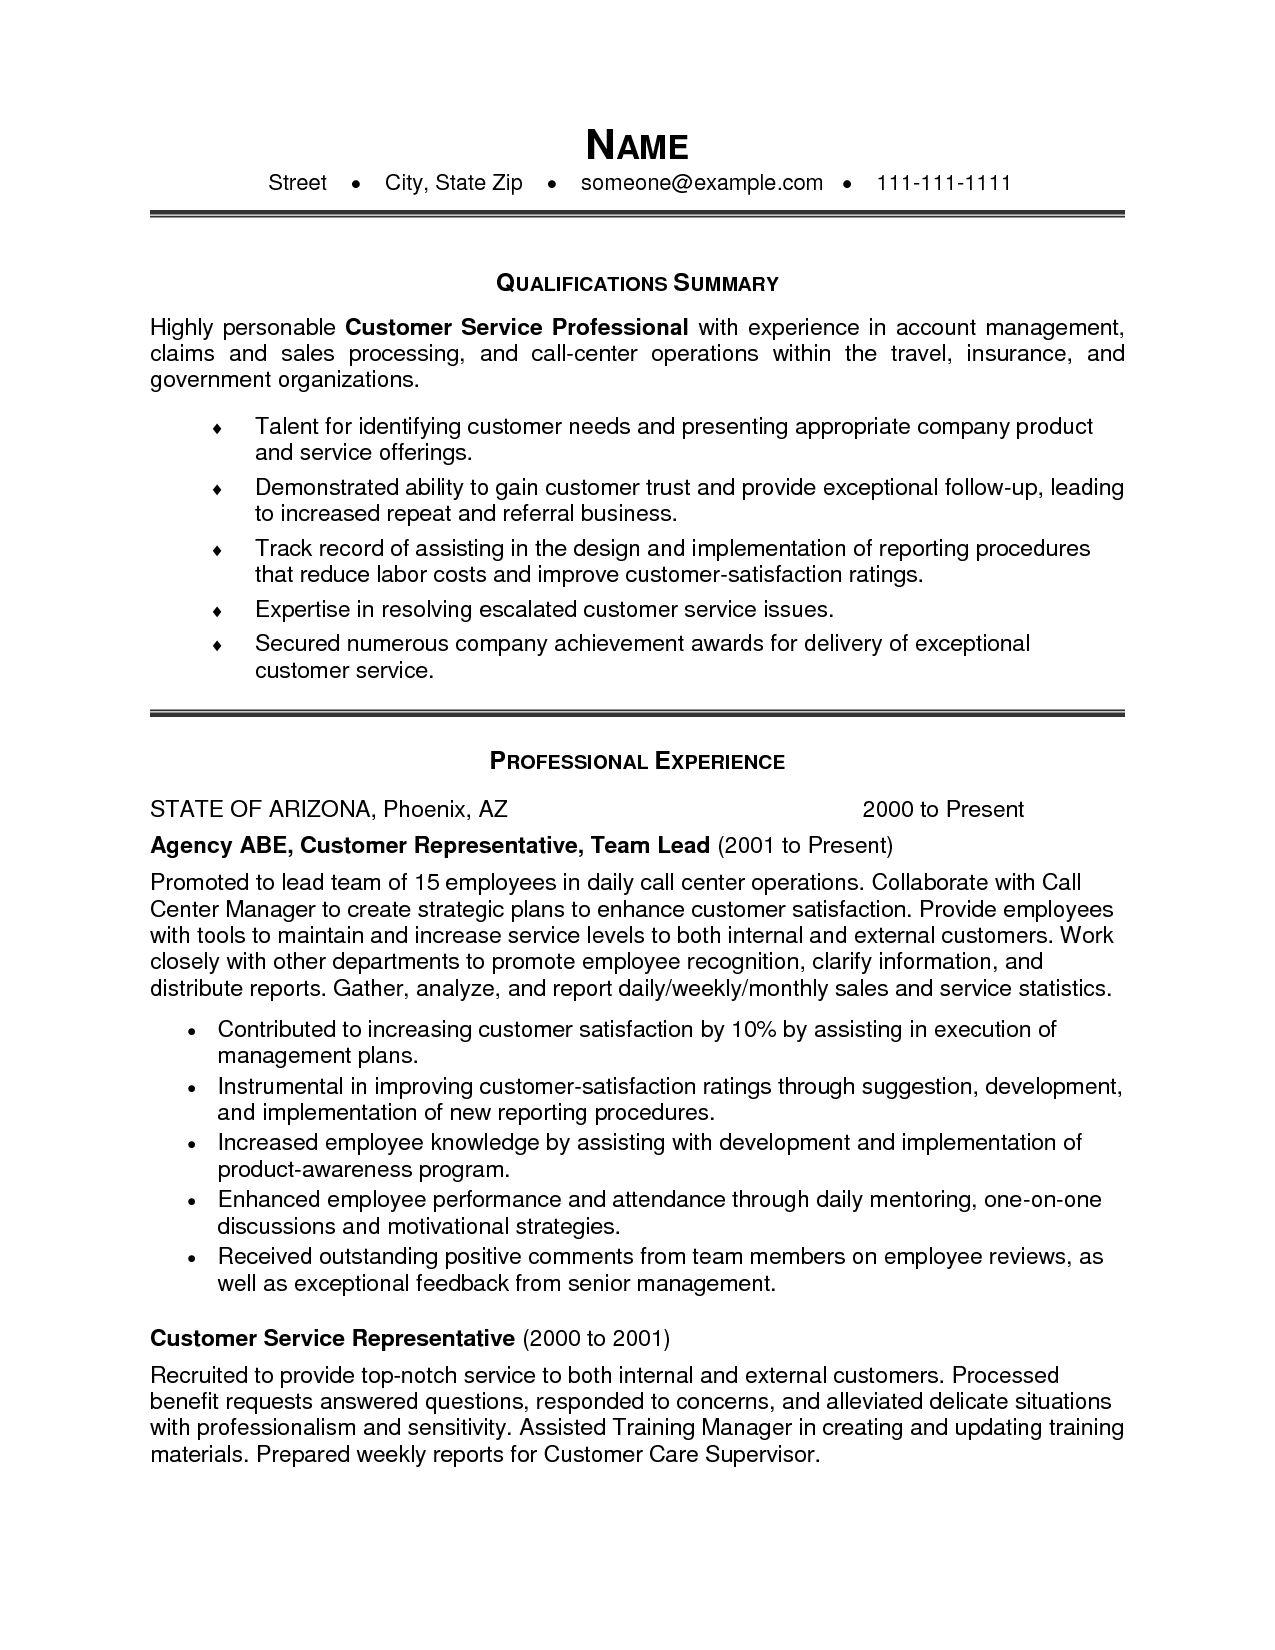 28 Cool Customer Service Resume Objective Or Summary Examples with Pictures